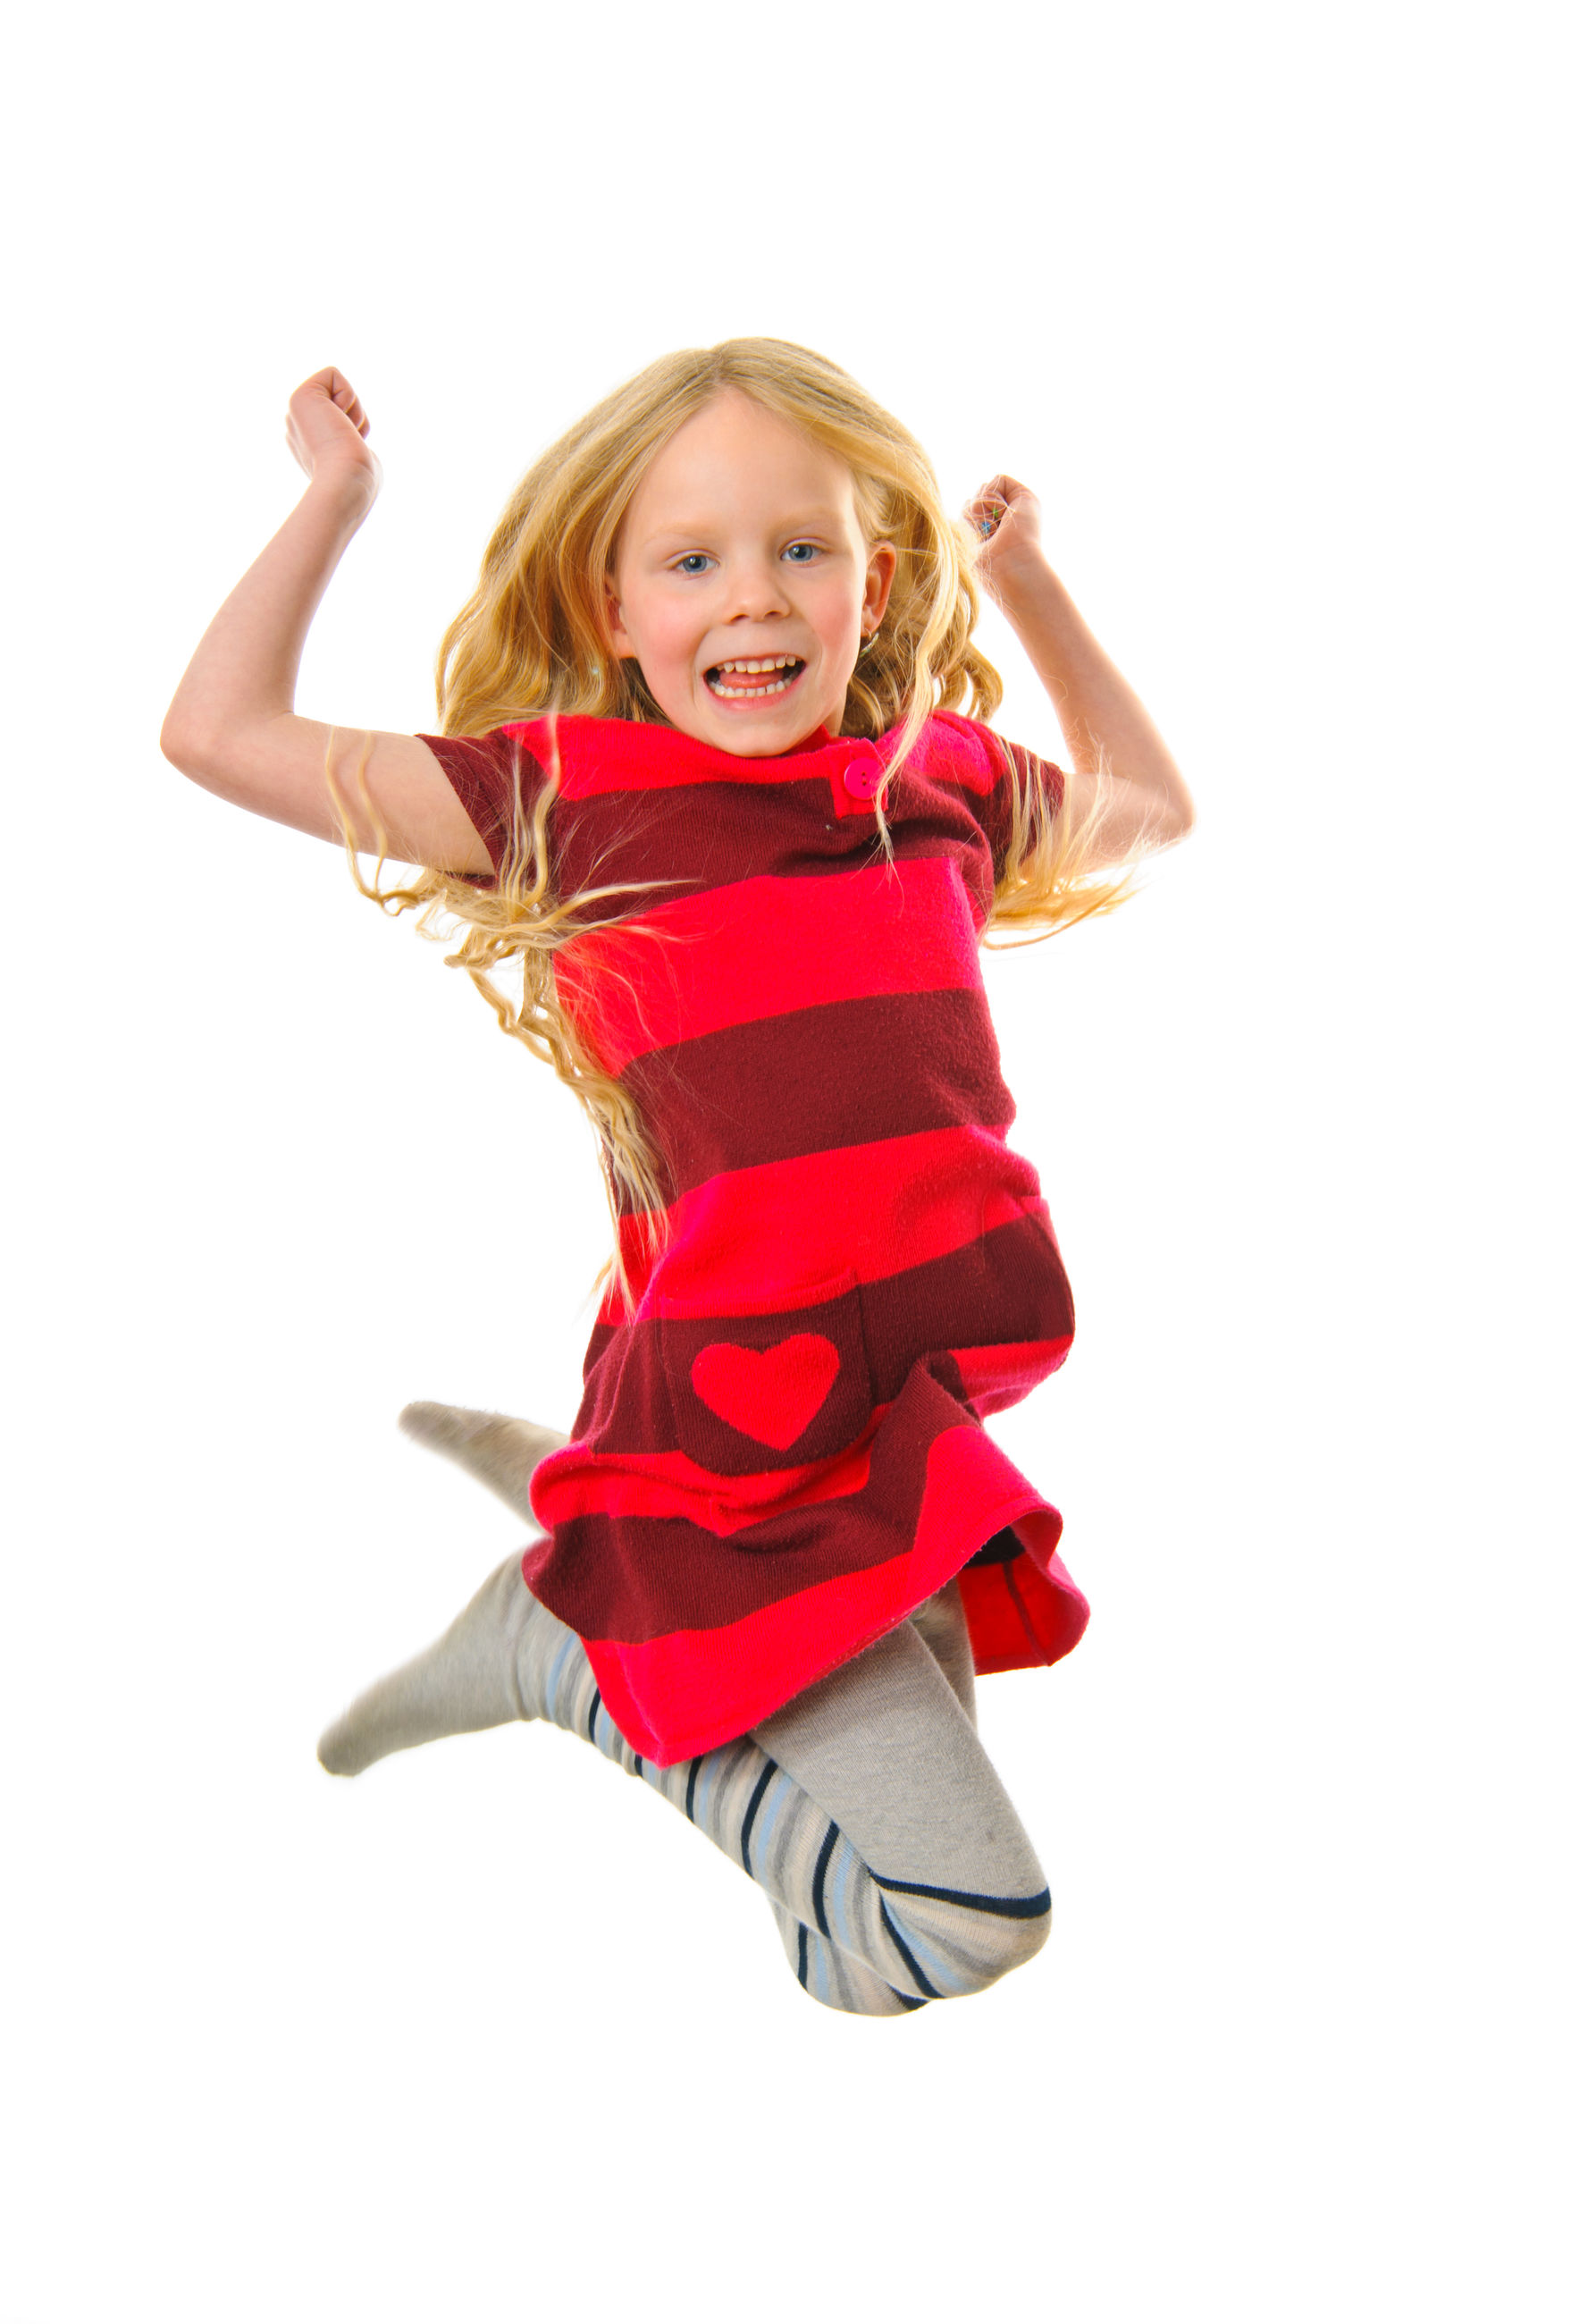 PORTRAIT OF A SMILING GIRL WITH ARMS RAISED